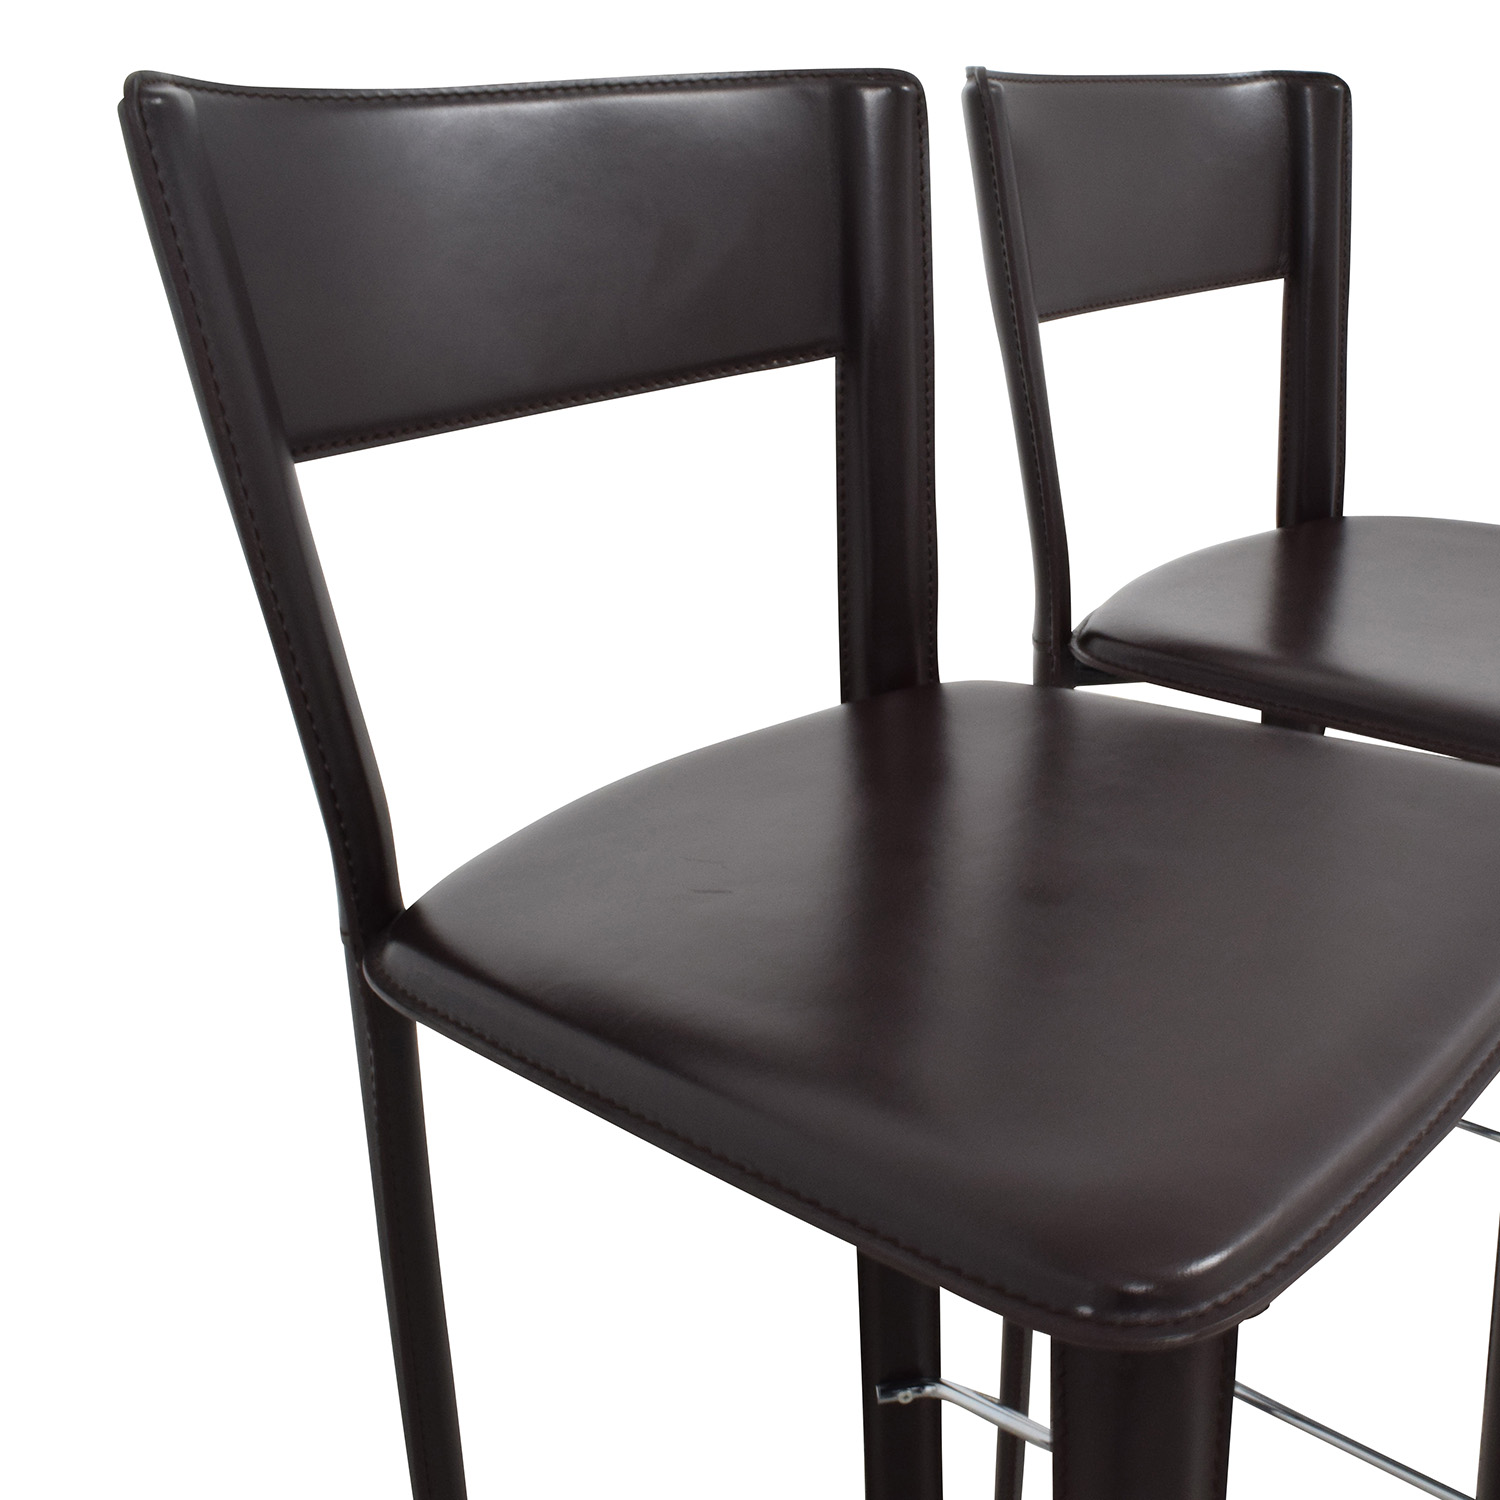 70 off design within reach design within reach allegro counter stools chairs - Allegro bar stool ...